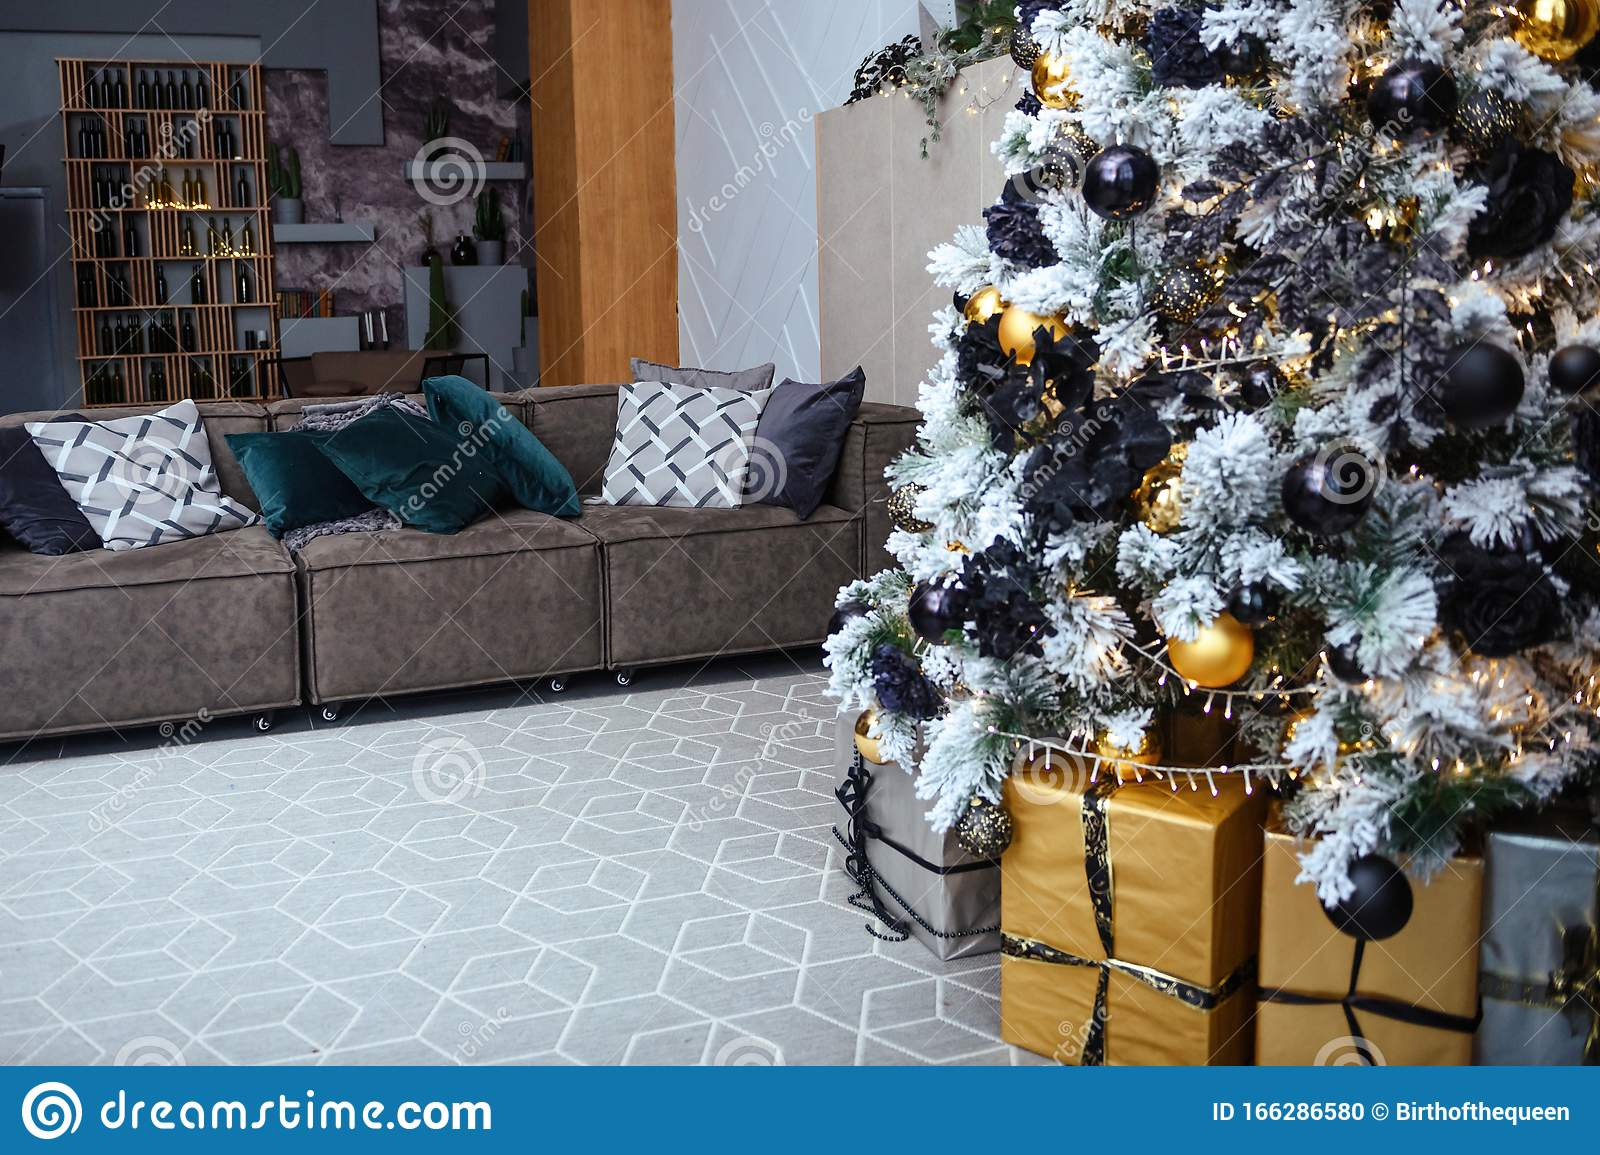 Stylish Christmas Living Room Decor In Gold And Silver Tones A Large Beautifully Decorated Christmas Tree Stands In The Room Next Stock Photo Image Of Cone Bright 166286580